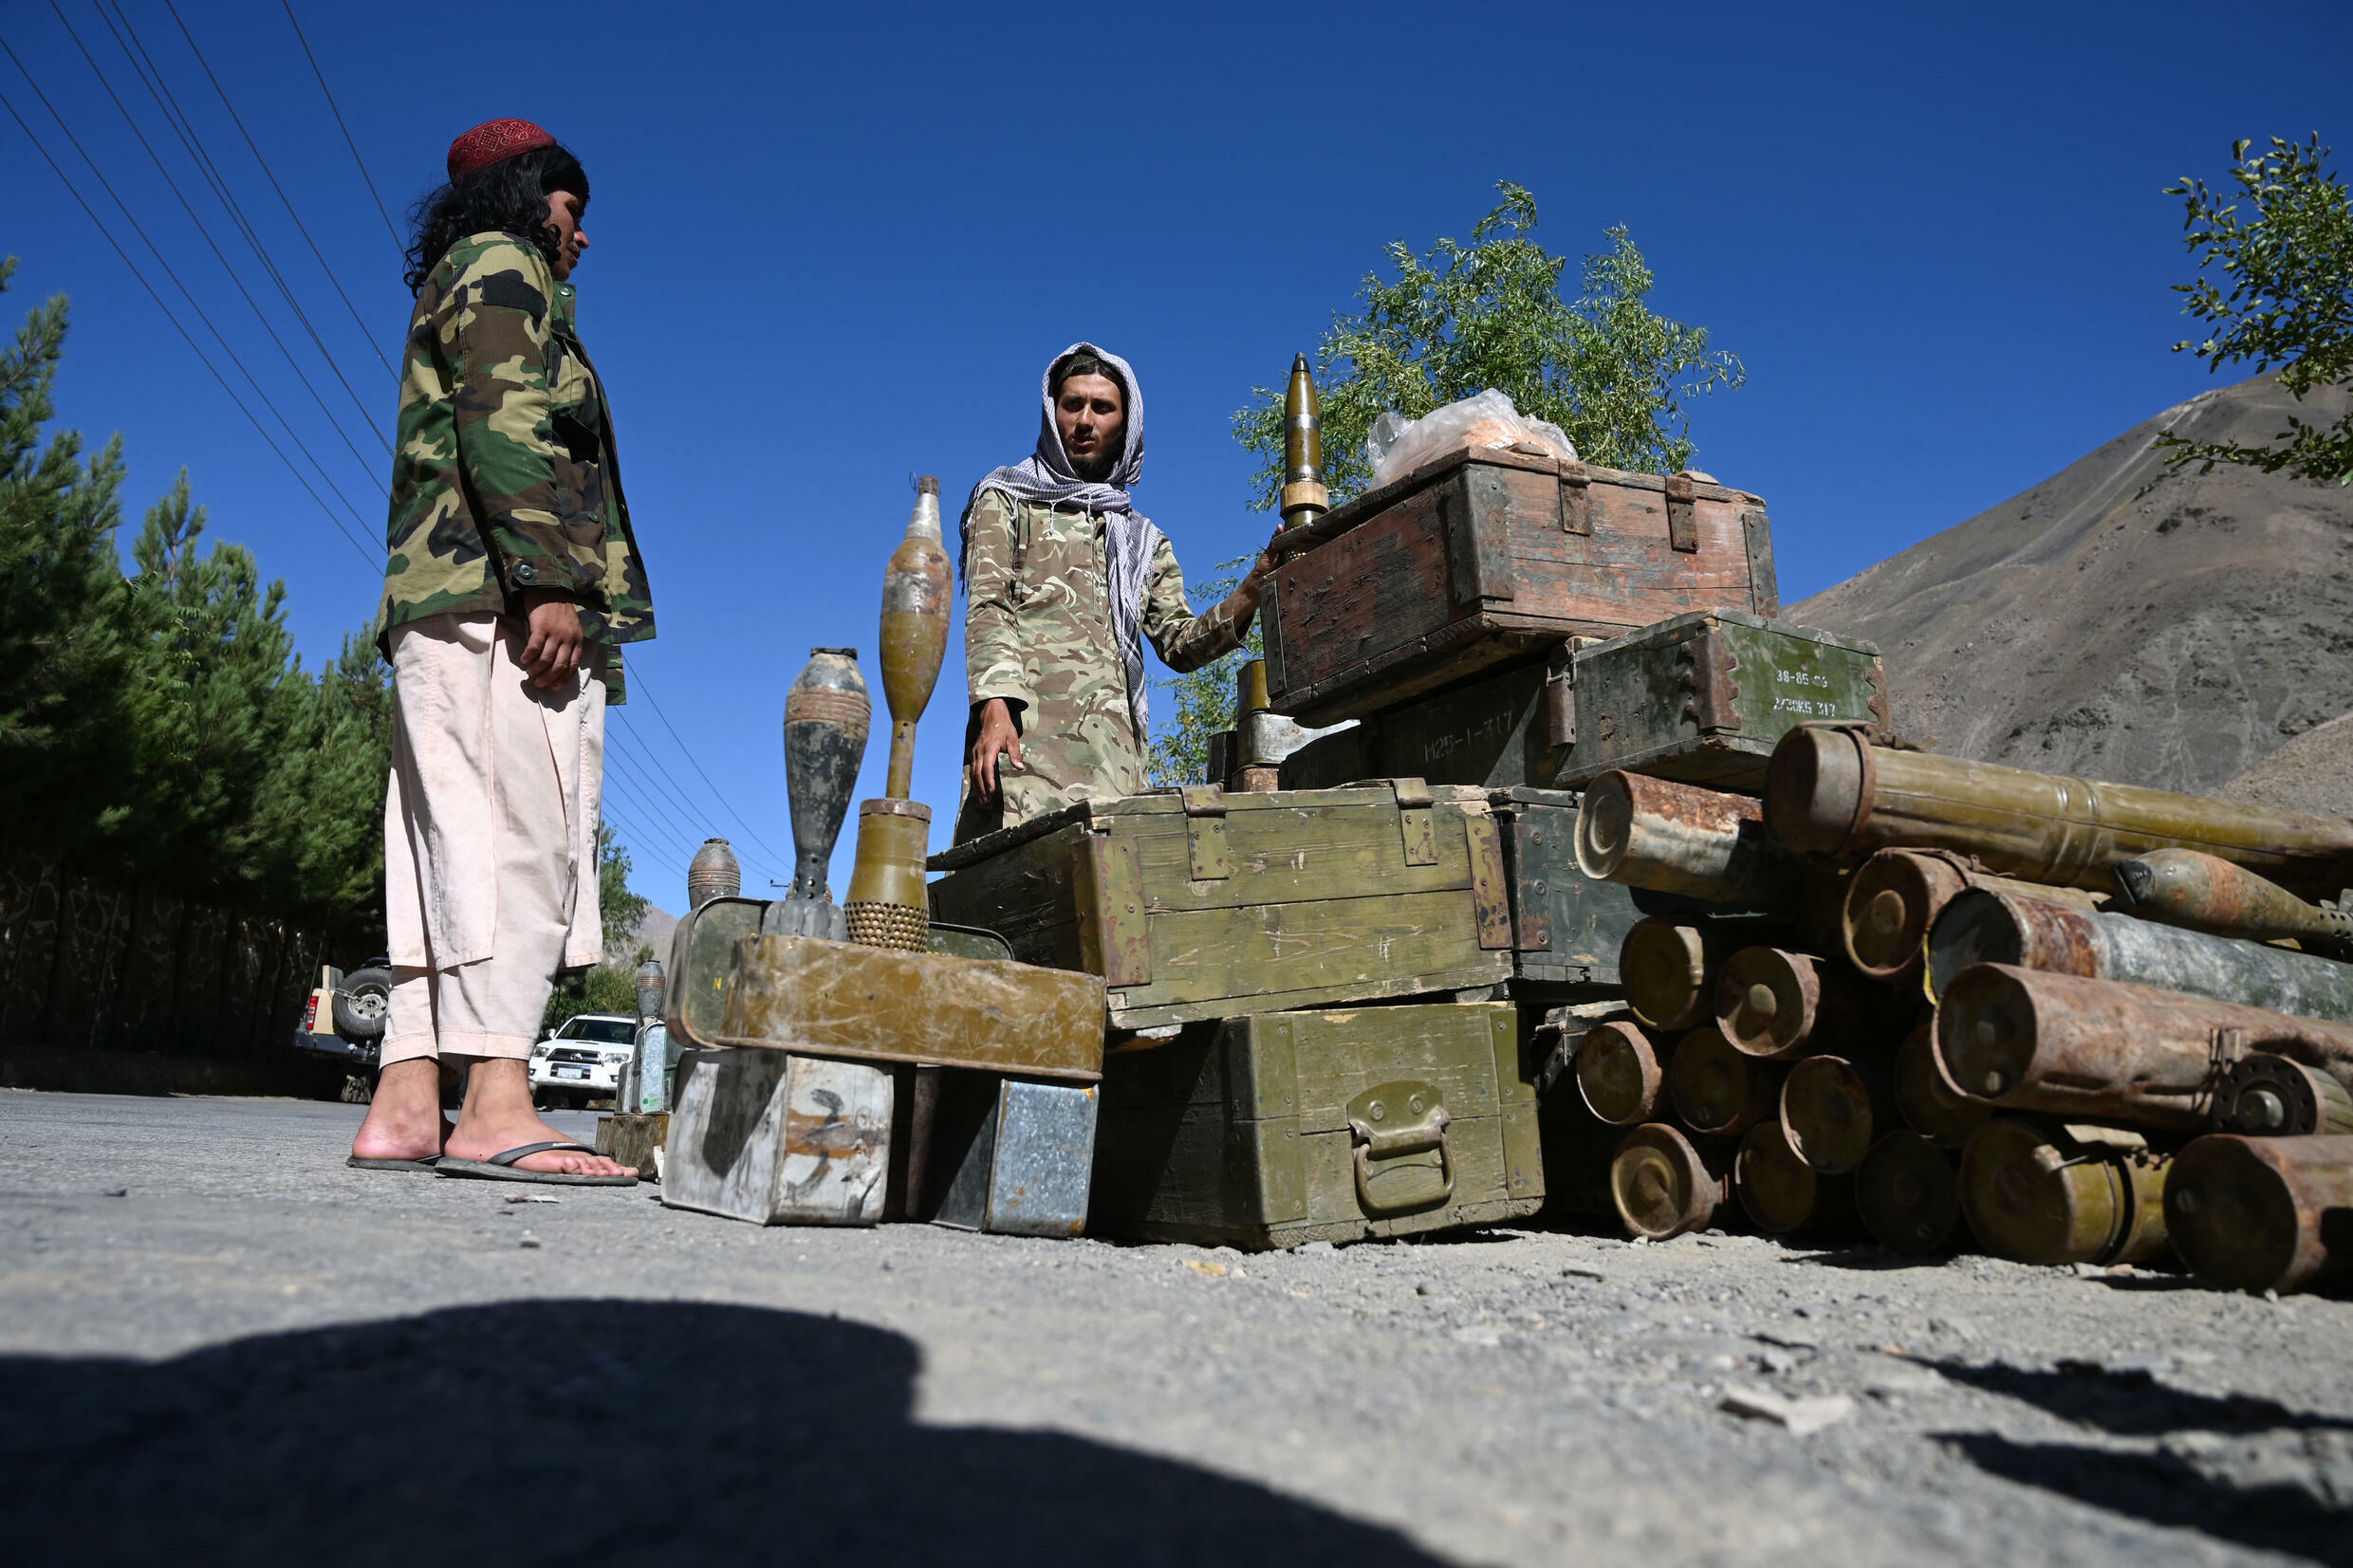 The Taliban overran Afghanistan in a lightning offensive ahead of the US pullout in August